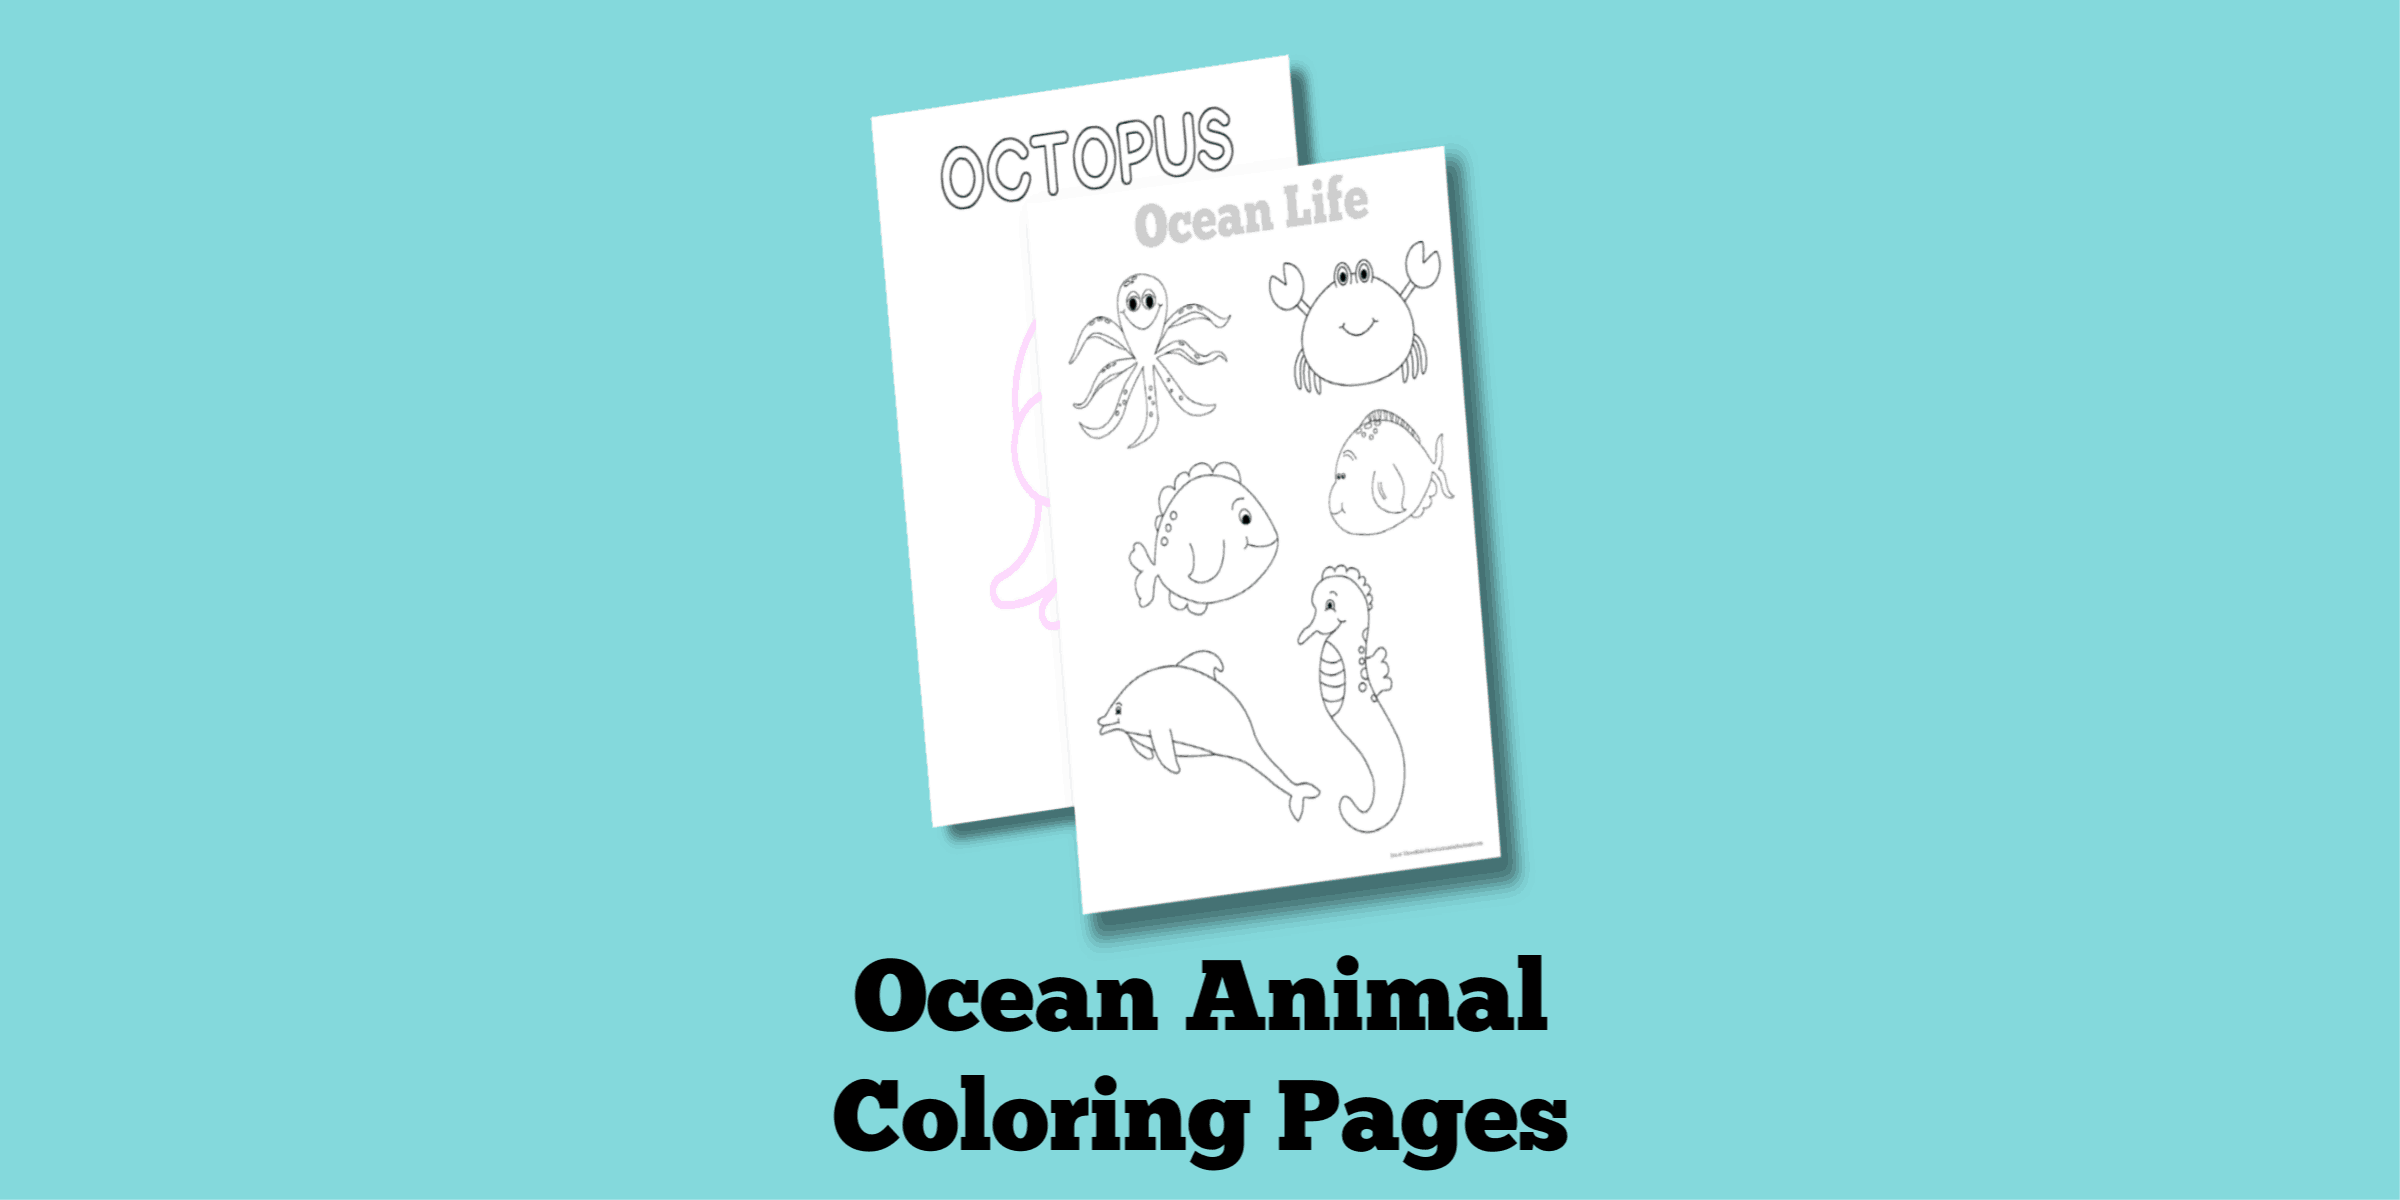 Free Printable Ocean Life Coloring Pages (Fun Under the Sea!)